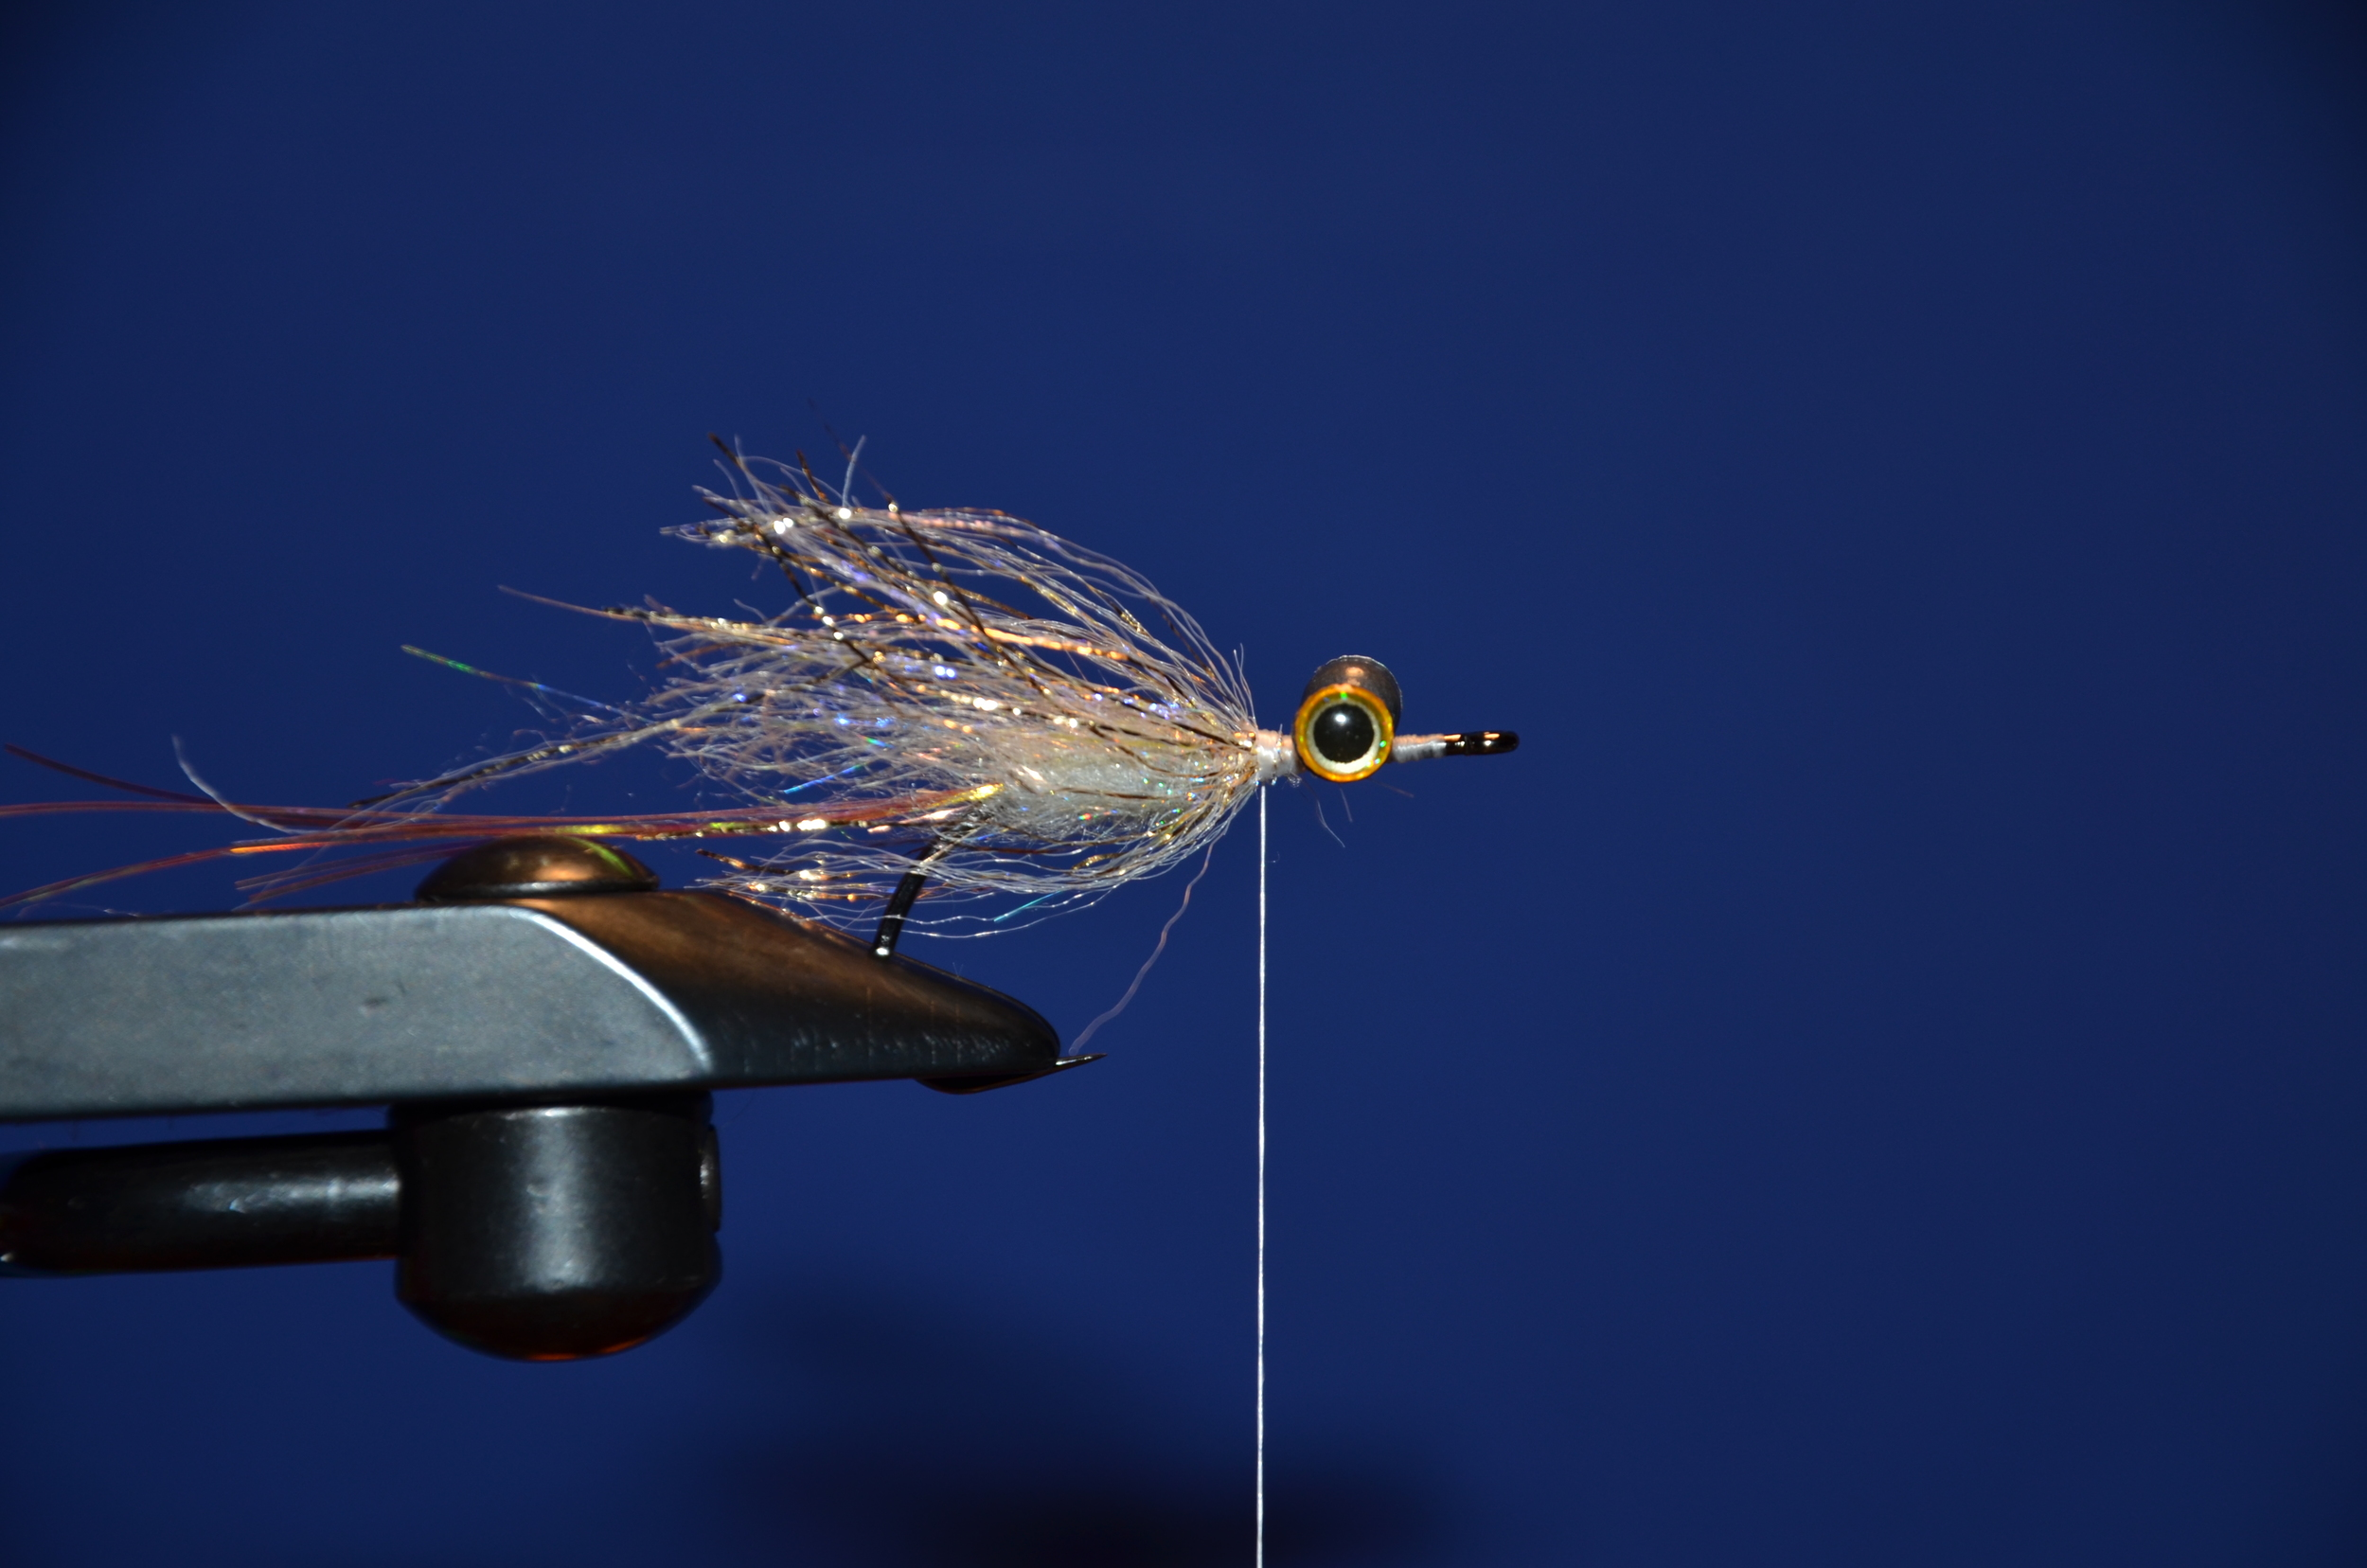 Tie Gold uv polar flash and give it 2-3 turns, make sure to brush the fibers back as you wrap.